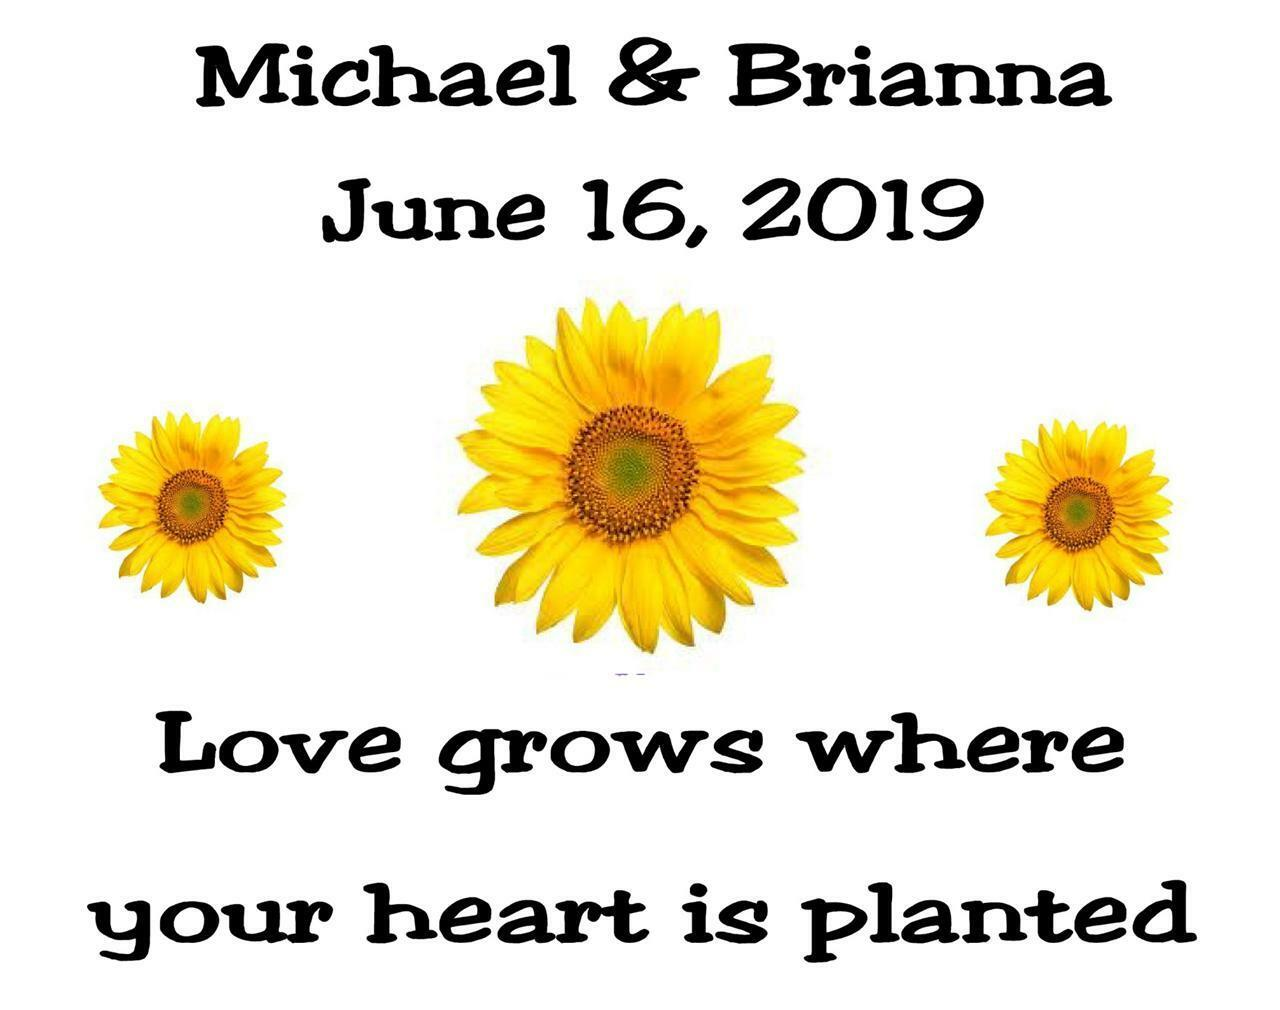 Wedding Favor Seed Packets Personalized Sunflower Custom Favors   eBay